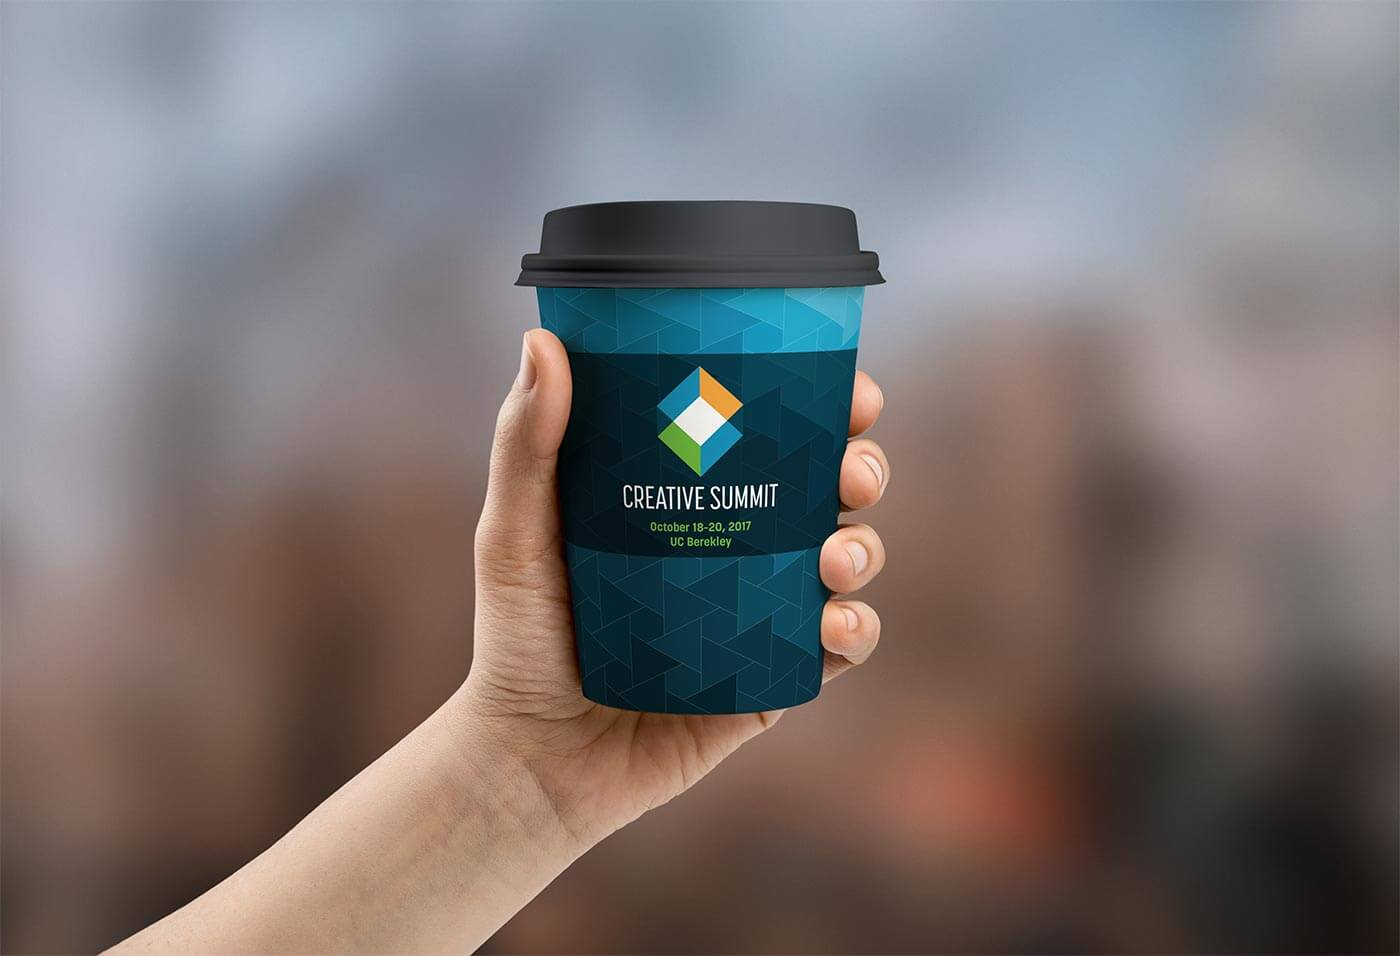 Mockup of the Creative Summit brand identity on a coffee mug, created in part by Andre Casey